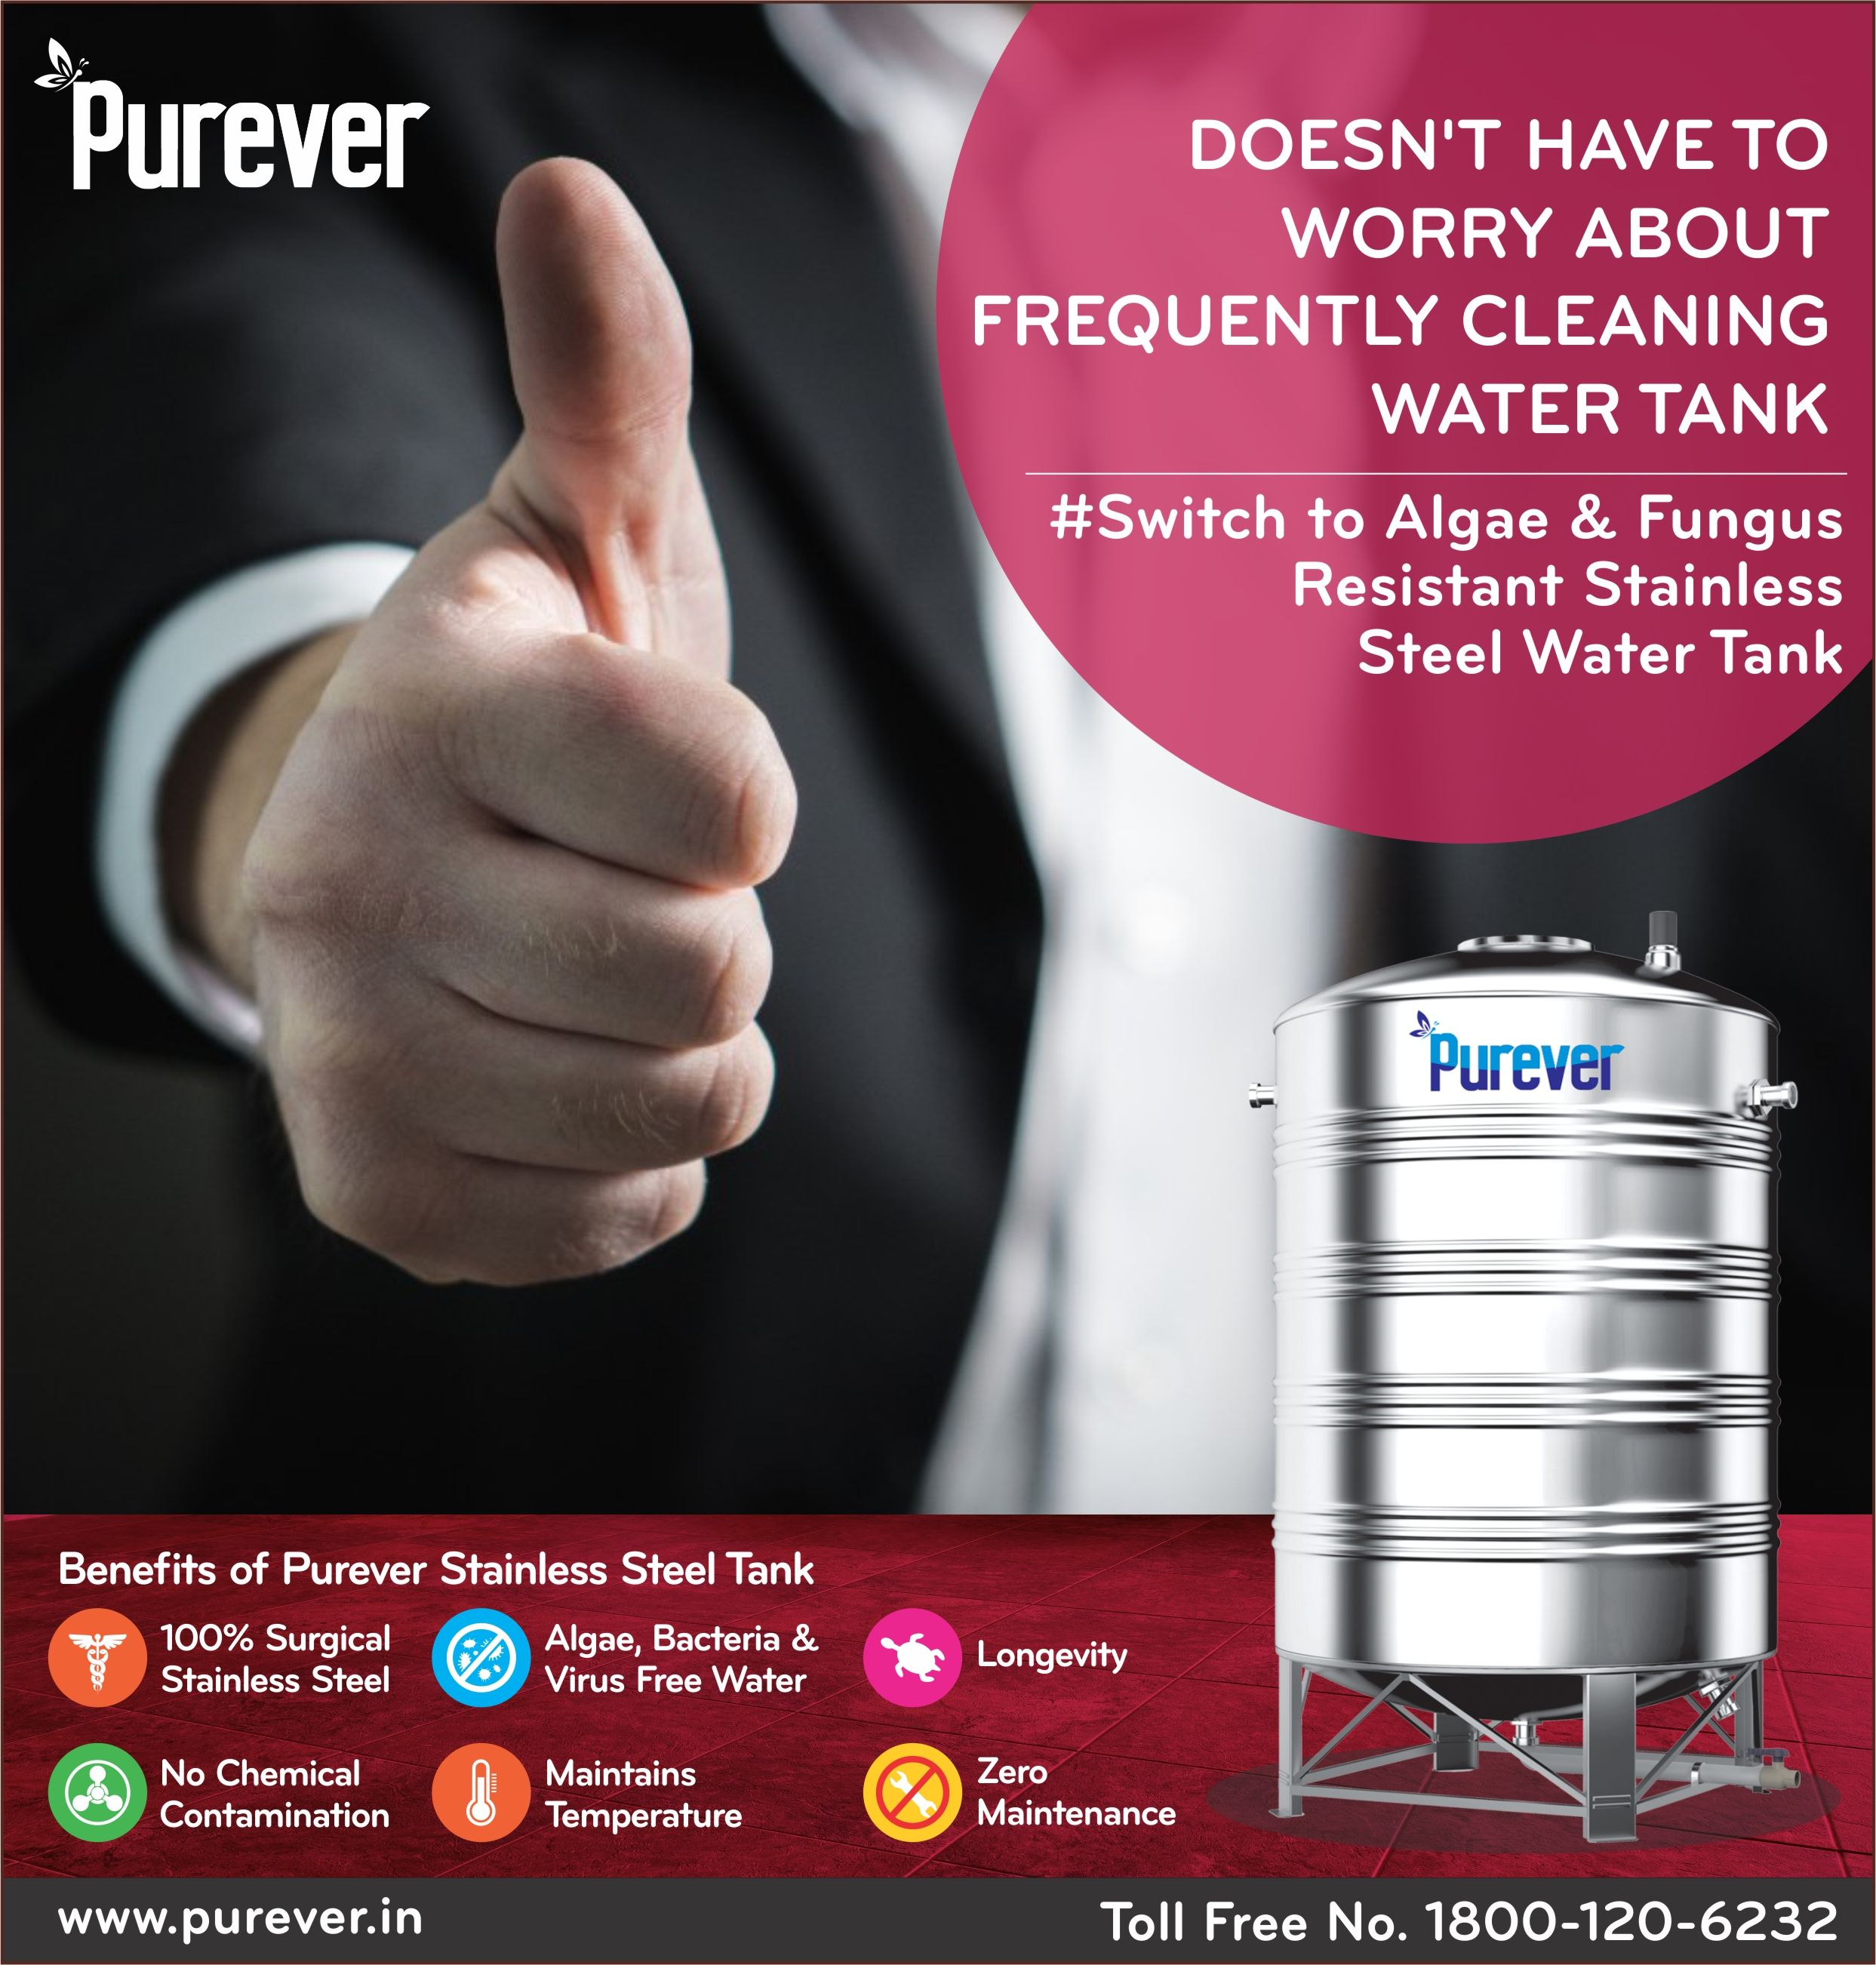 Doesn T Have To Worry About Frequently Cleaning Water Tank Switch To Algae Fungus Resistant Stainless Steel W Steel Water Tanks Water Tank Steel Water